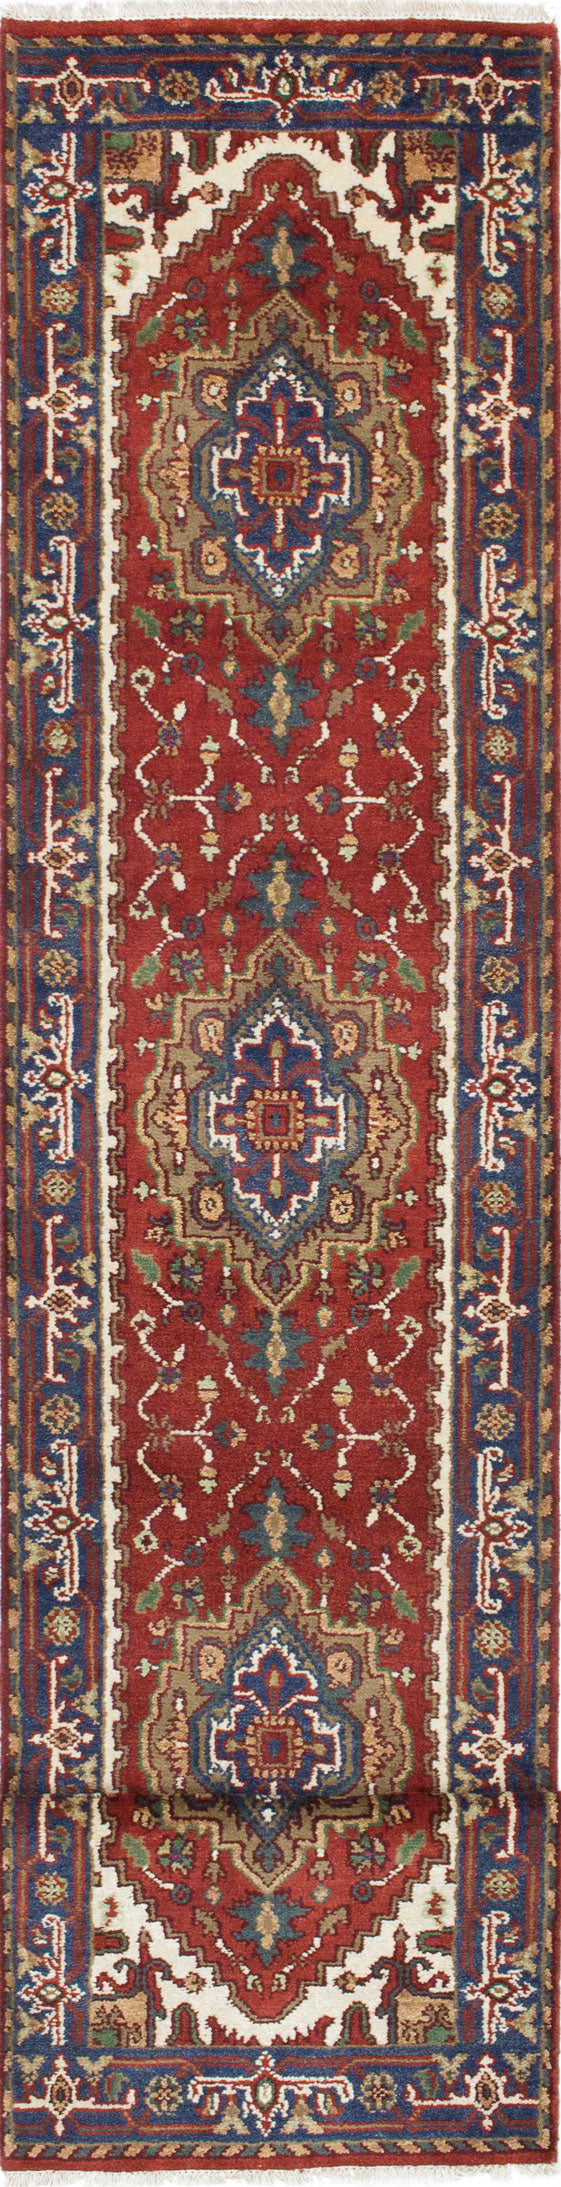 "Hand-knotted Indian Floral  Traditional Serapi-Heritage Runner rug  Dark Orange 2'6 x 15'9"" """